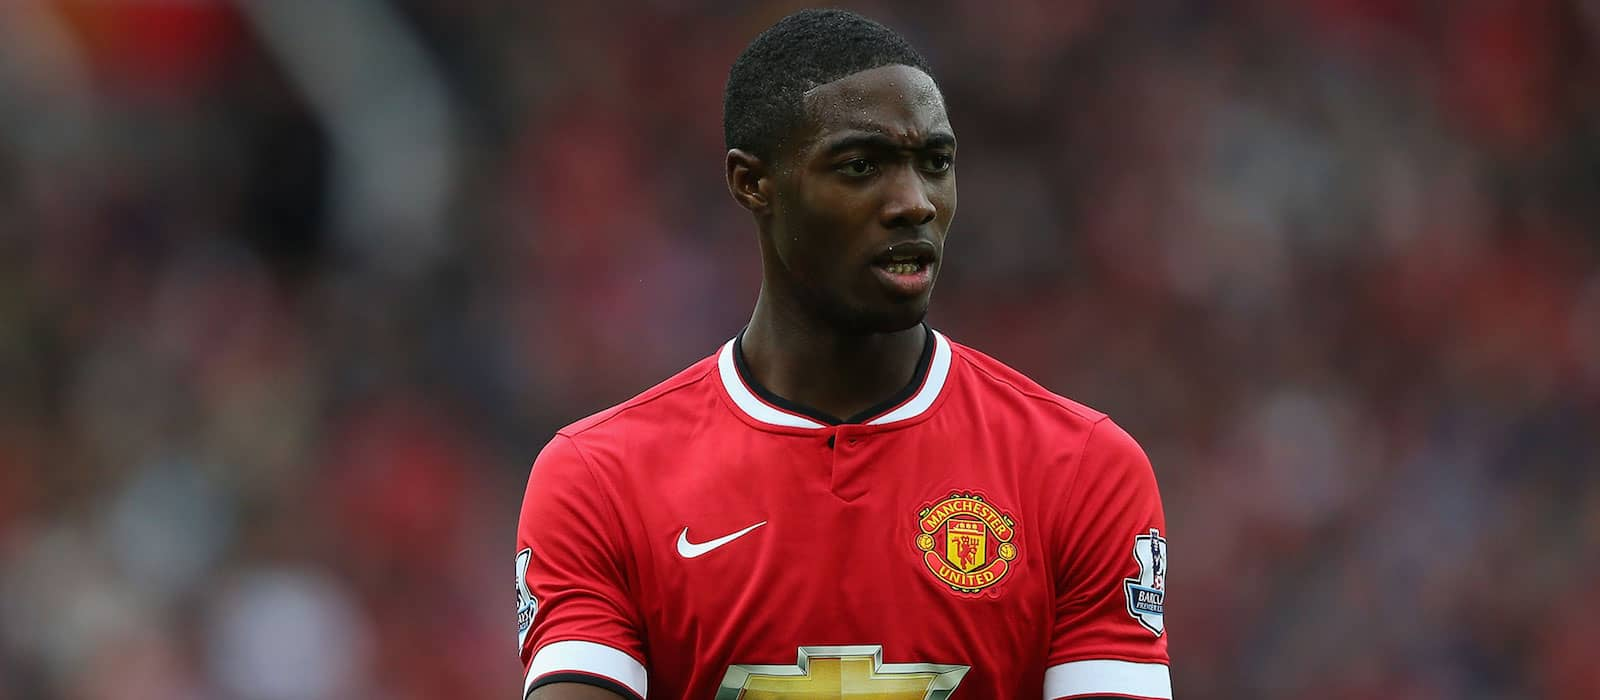 Tyler Blackett, James Wilson and Will Keane to be sold by Jose Mourinho – report